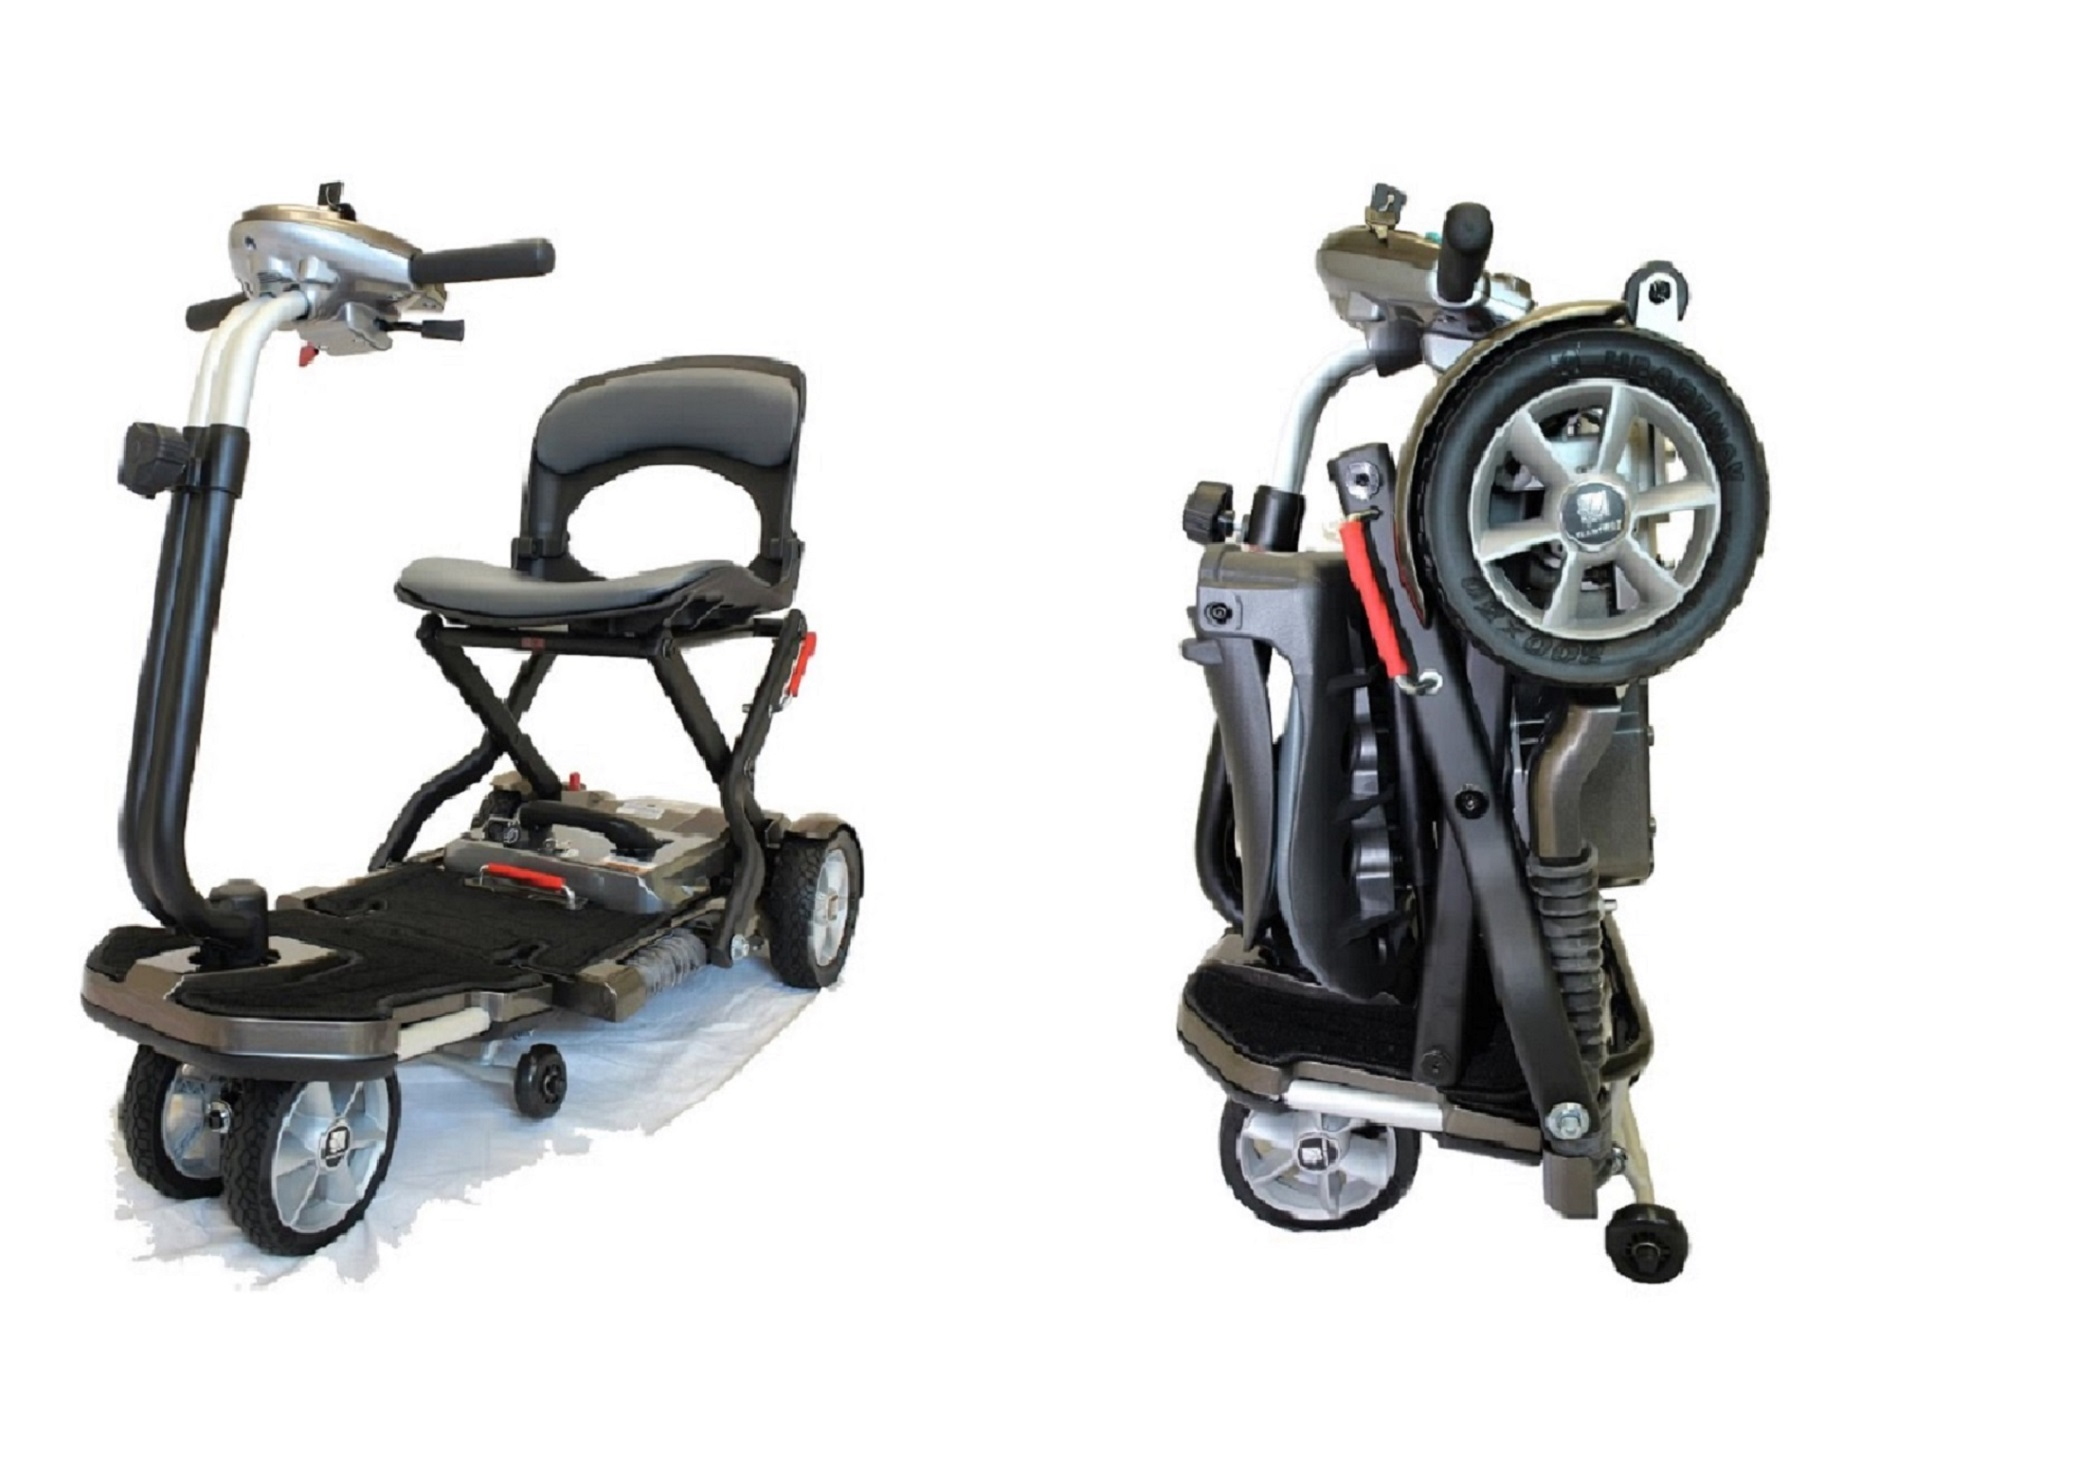 power chairs for sale true innovations chair assembly instructions wheelchairs mobility aids ucsmartbuys